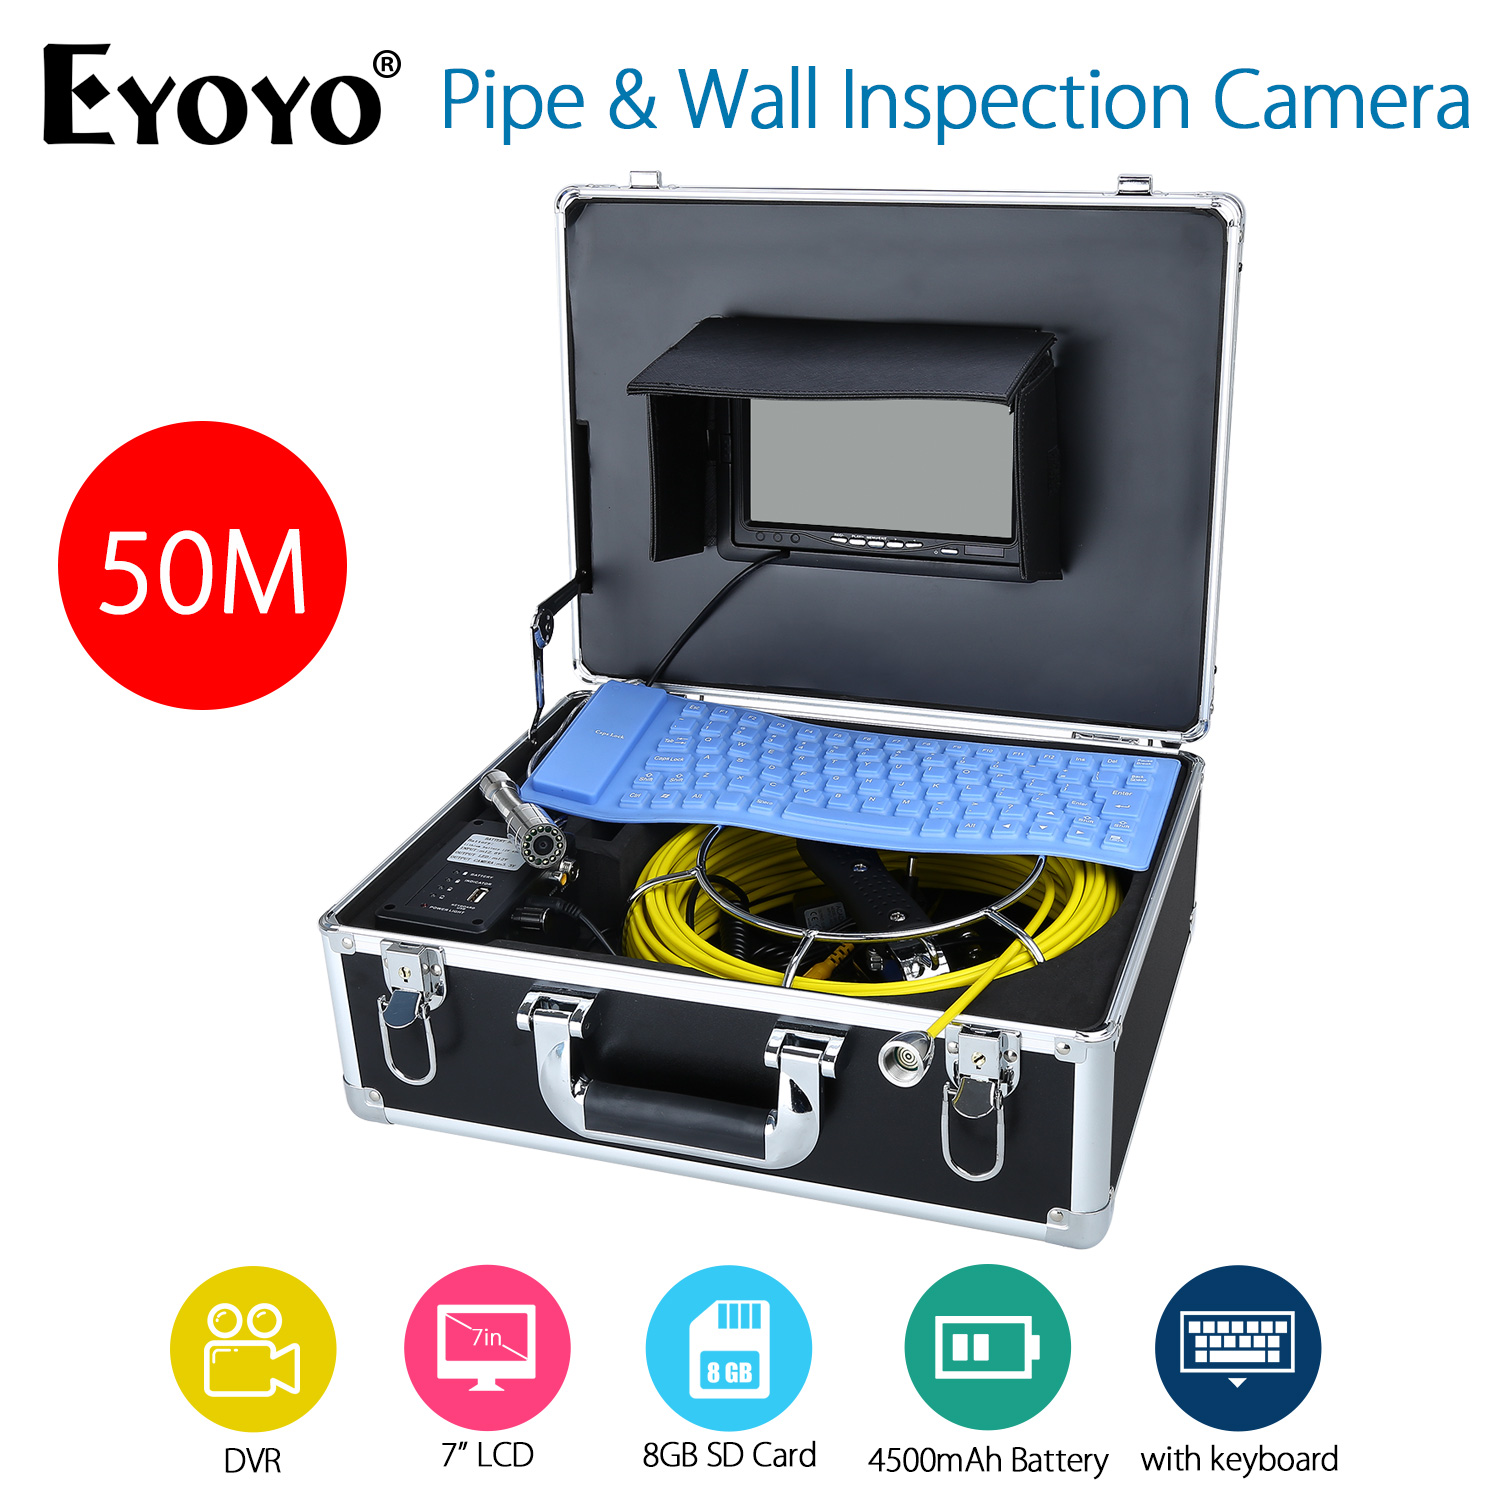 Eyoyo 7 Pipe Sewer Inspection Camera 50m DVR 8GB Drain Industrial Endoscope Video Inspection System Snake Camera w/ Keyboard ap 70 50m sewer pipeline endoscope inspection snake camera pipe inspection camera system 165ft drain pipe tube camera video